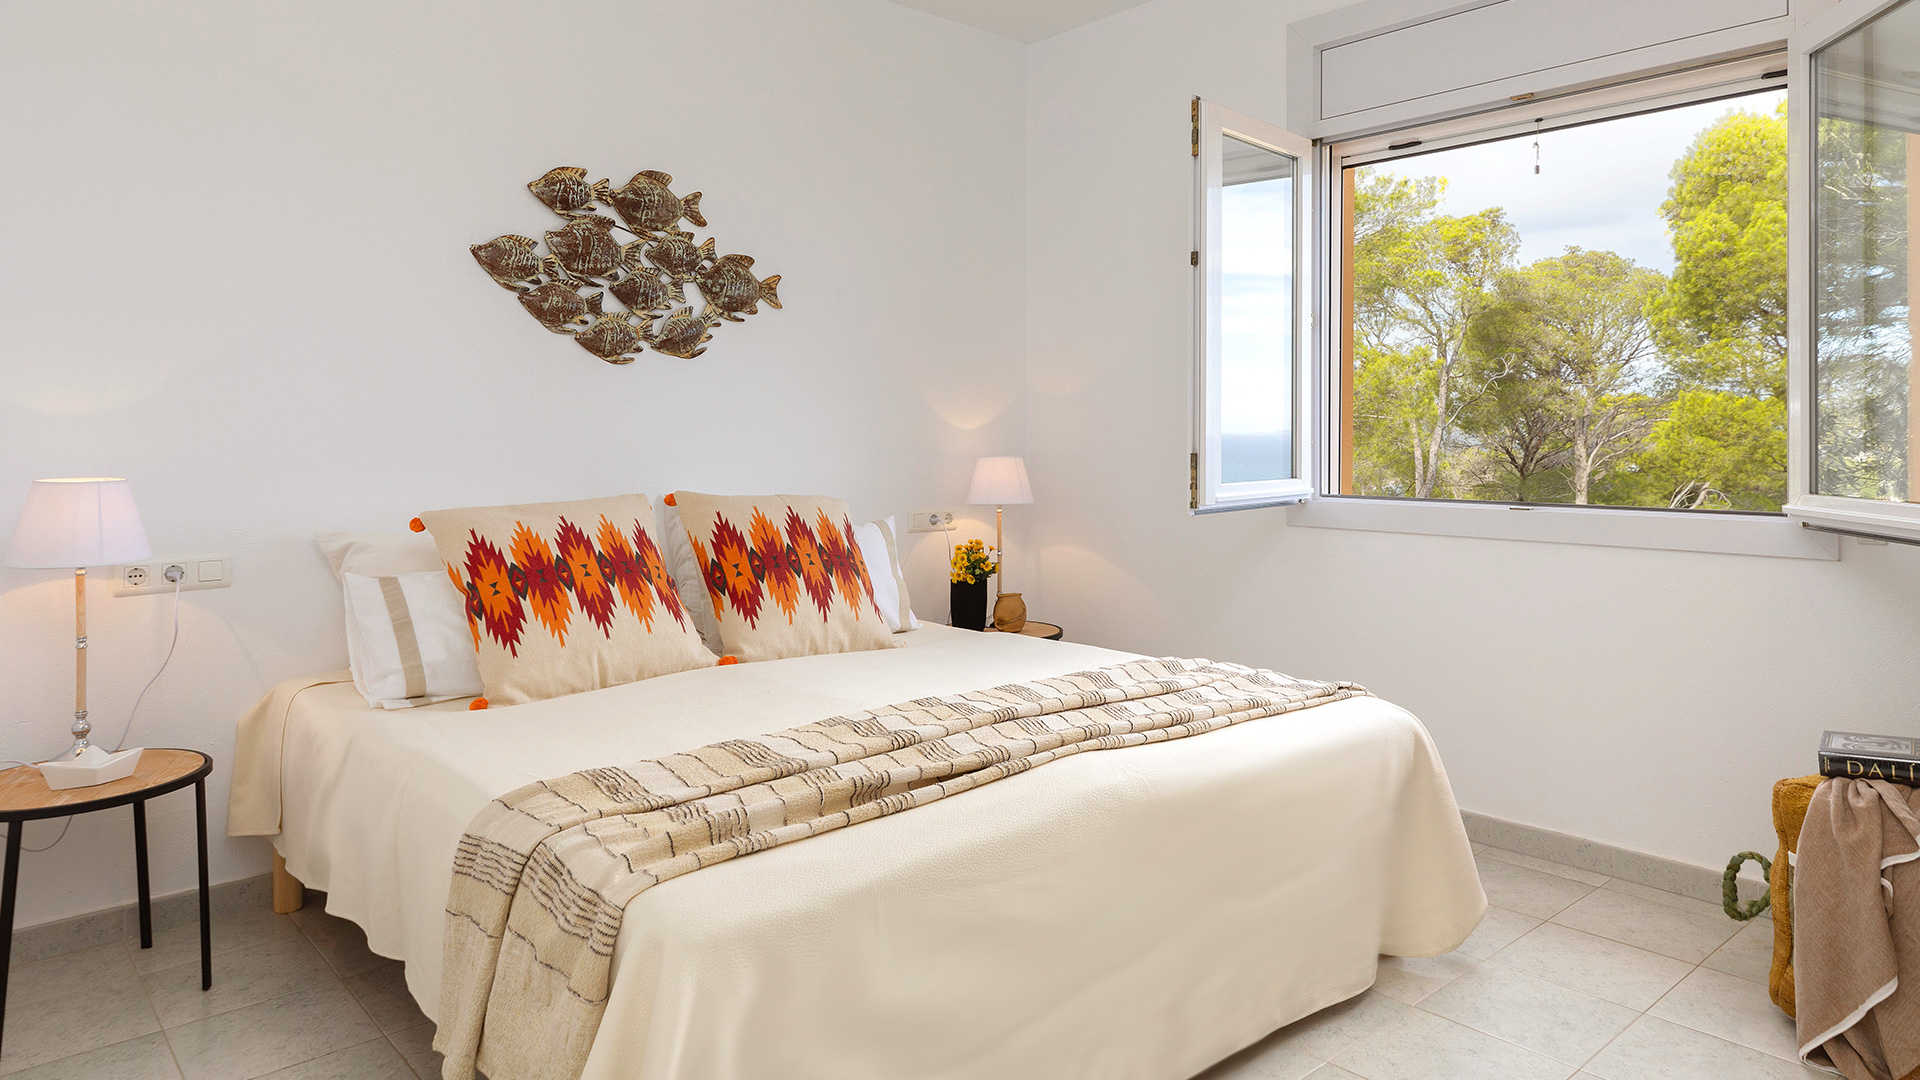 Home staging en una casa de la Costa Brava